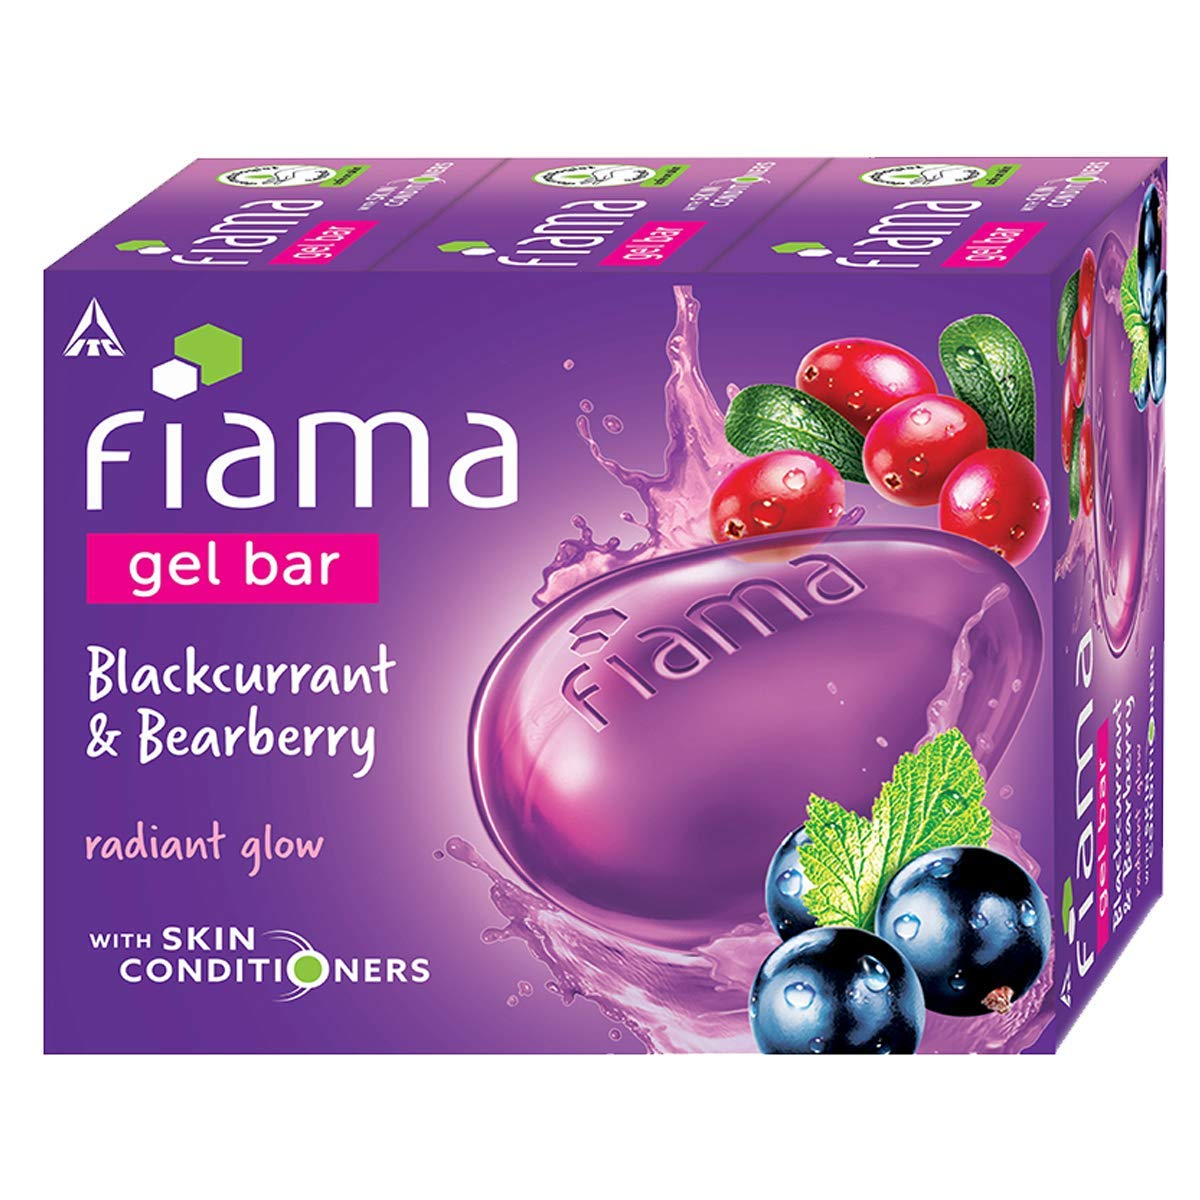 Fiama Gel Bar Blackcurrant and Bearberry for radiant glowing skin, with skin conditioners, 125 gm soap (Pack of 3)